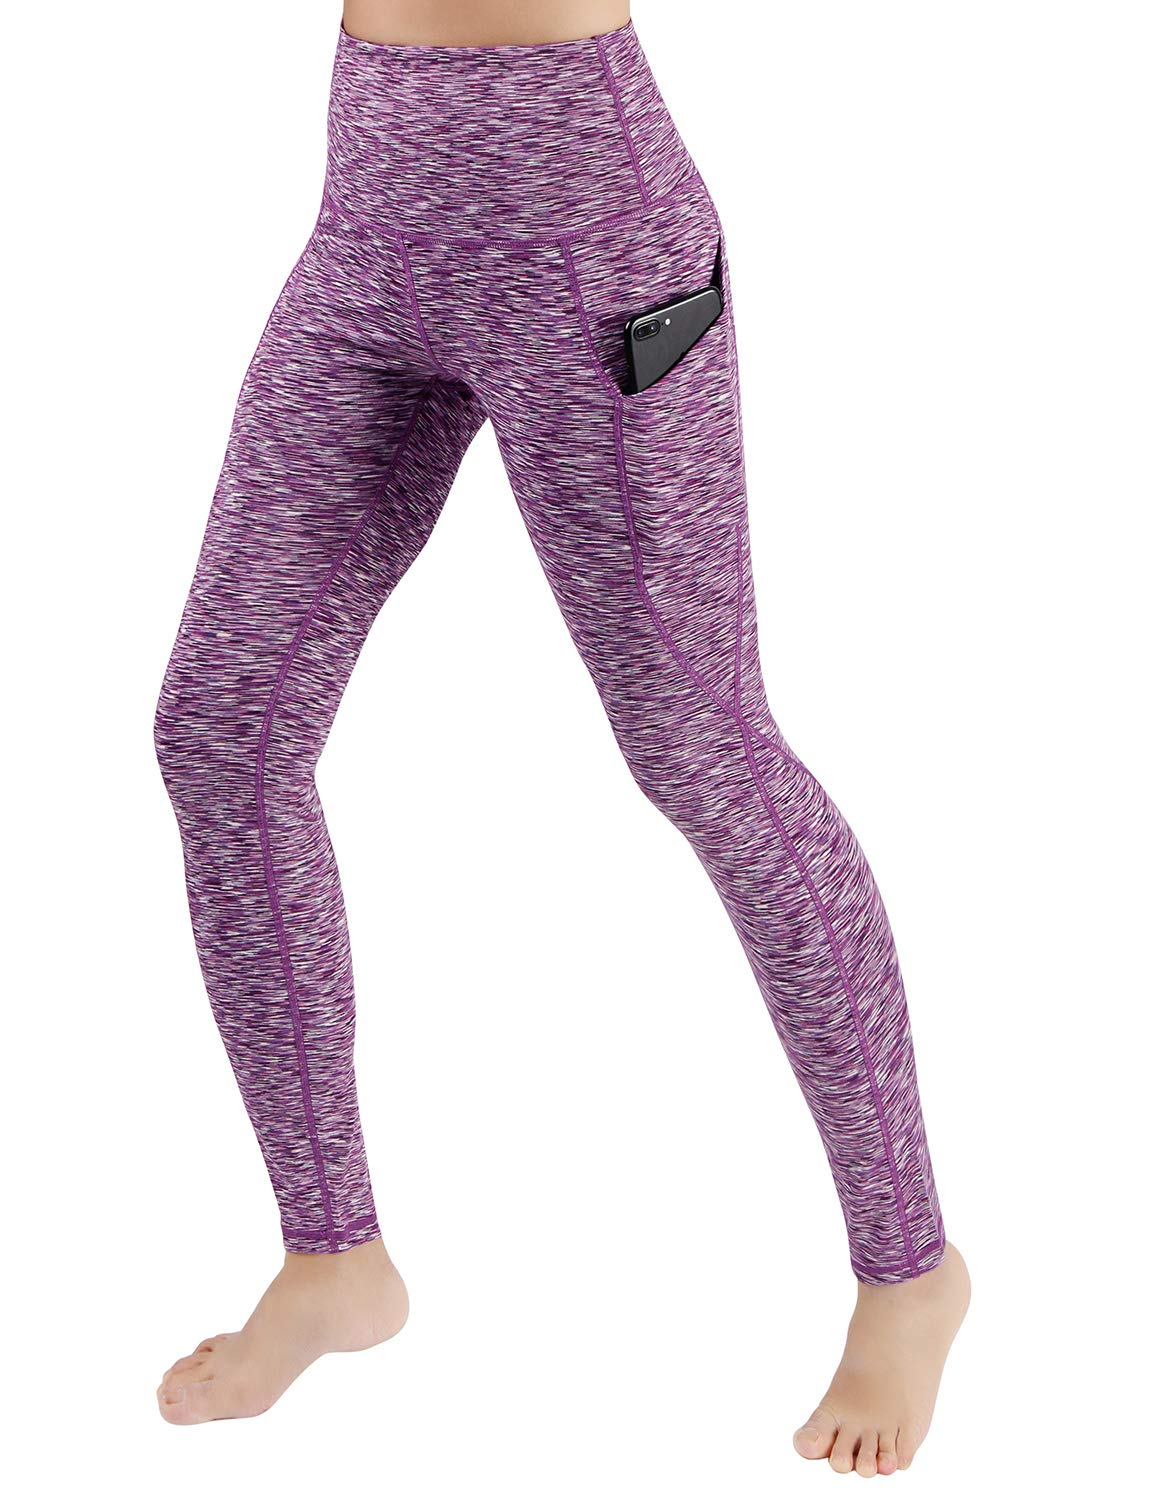 ODODOS Women's High Waist Yoga Pants with Pockets,Tummy Control,Workout Pants Running 4 Way Stretch Yoga Leggings with Pockets,SpaceDyePurple,X-Large by ODODOS